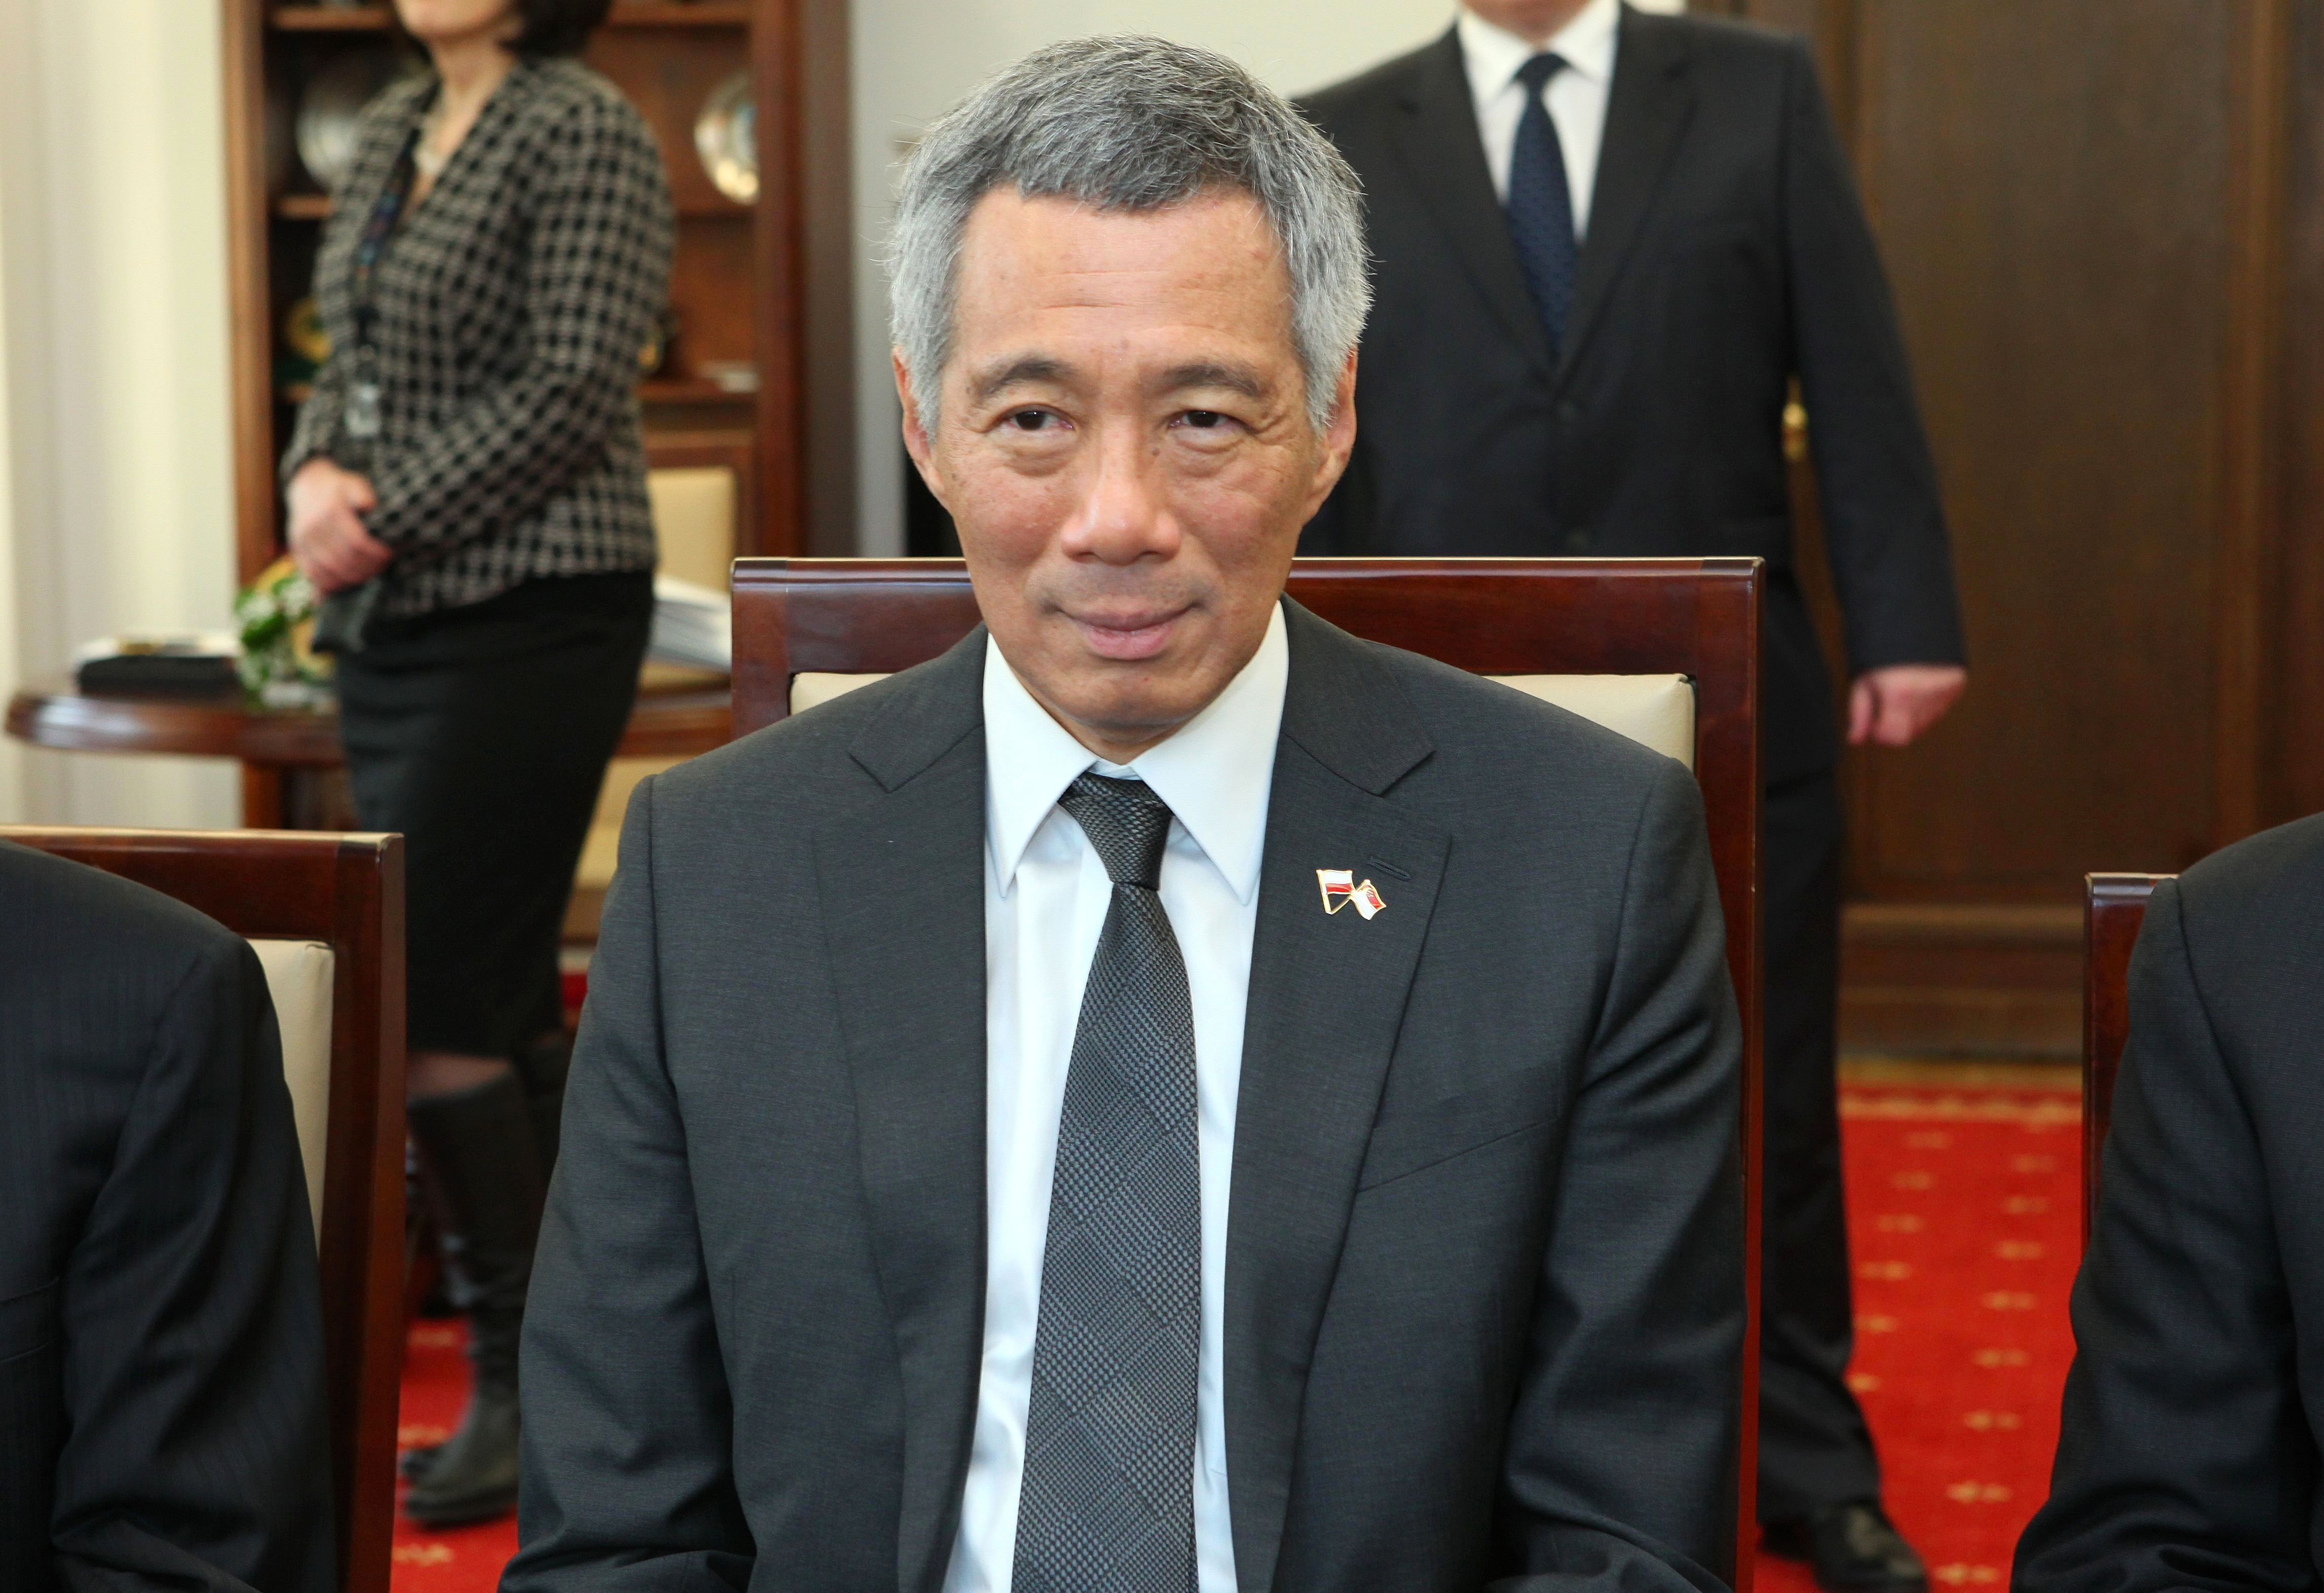 Lee_Hsien_Loong_Senate_of_Poland_02